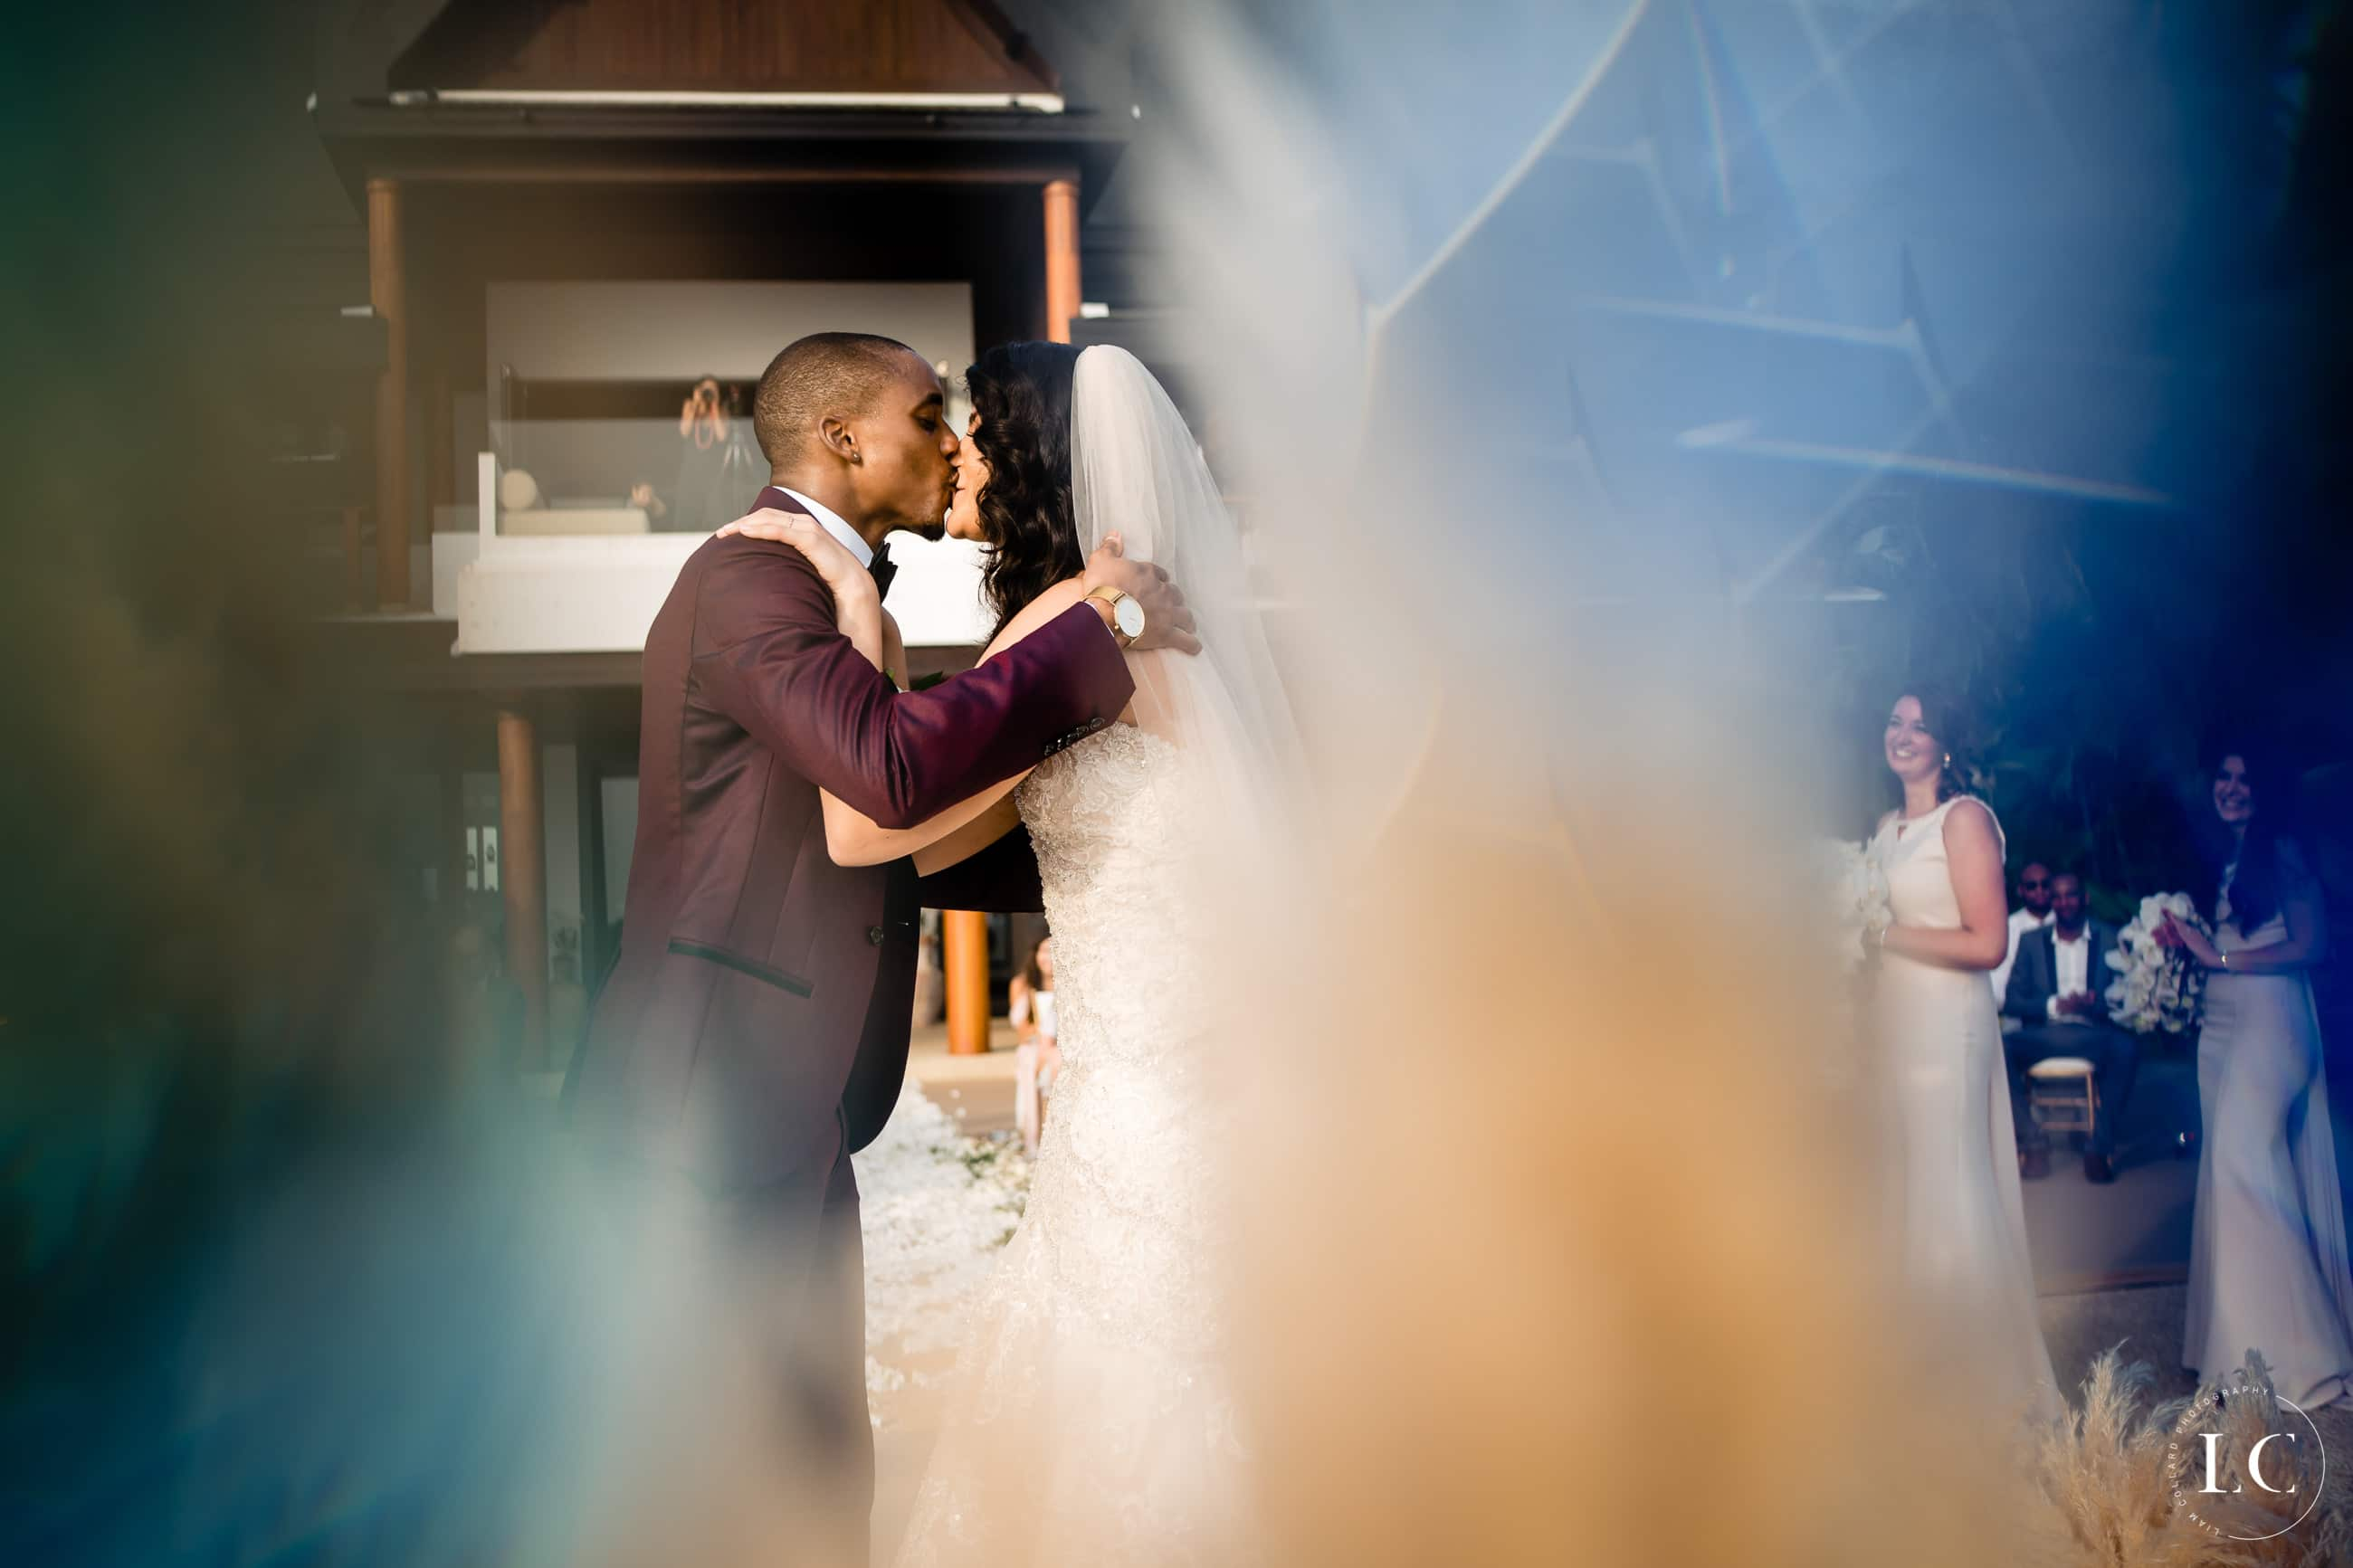 Distorted view of bride and groom kissing